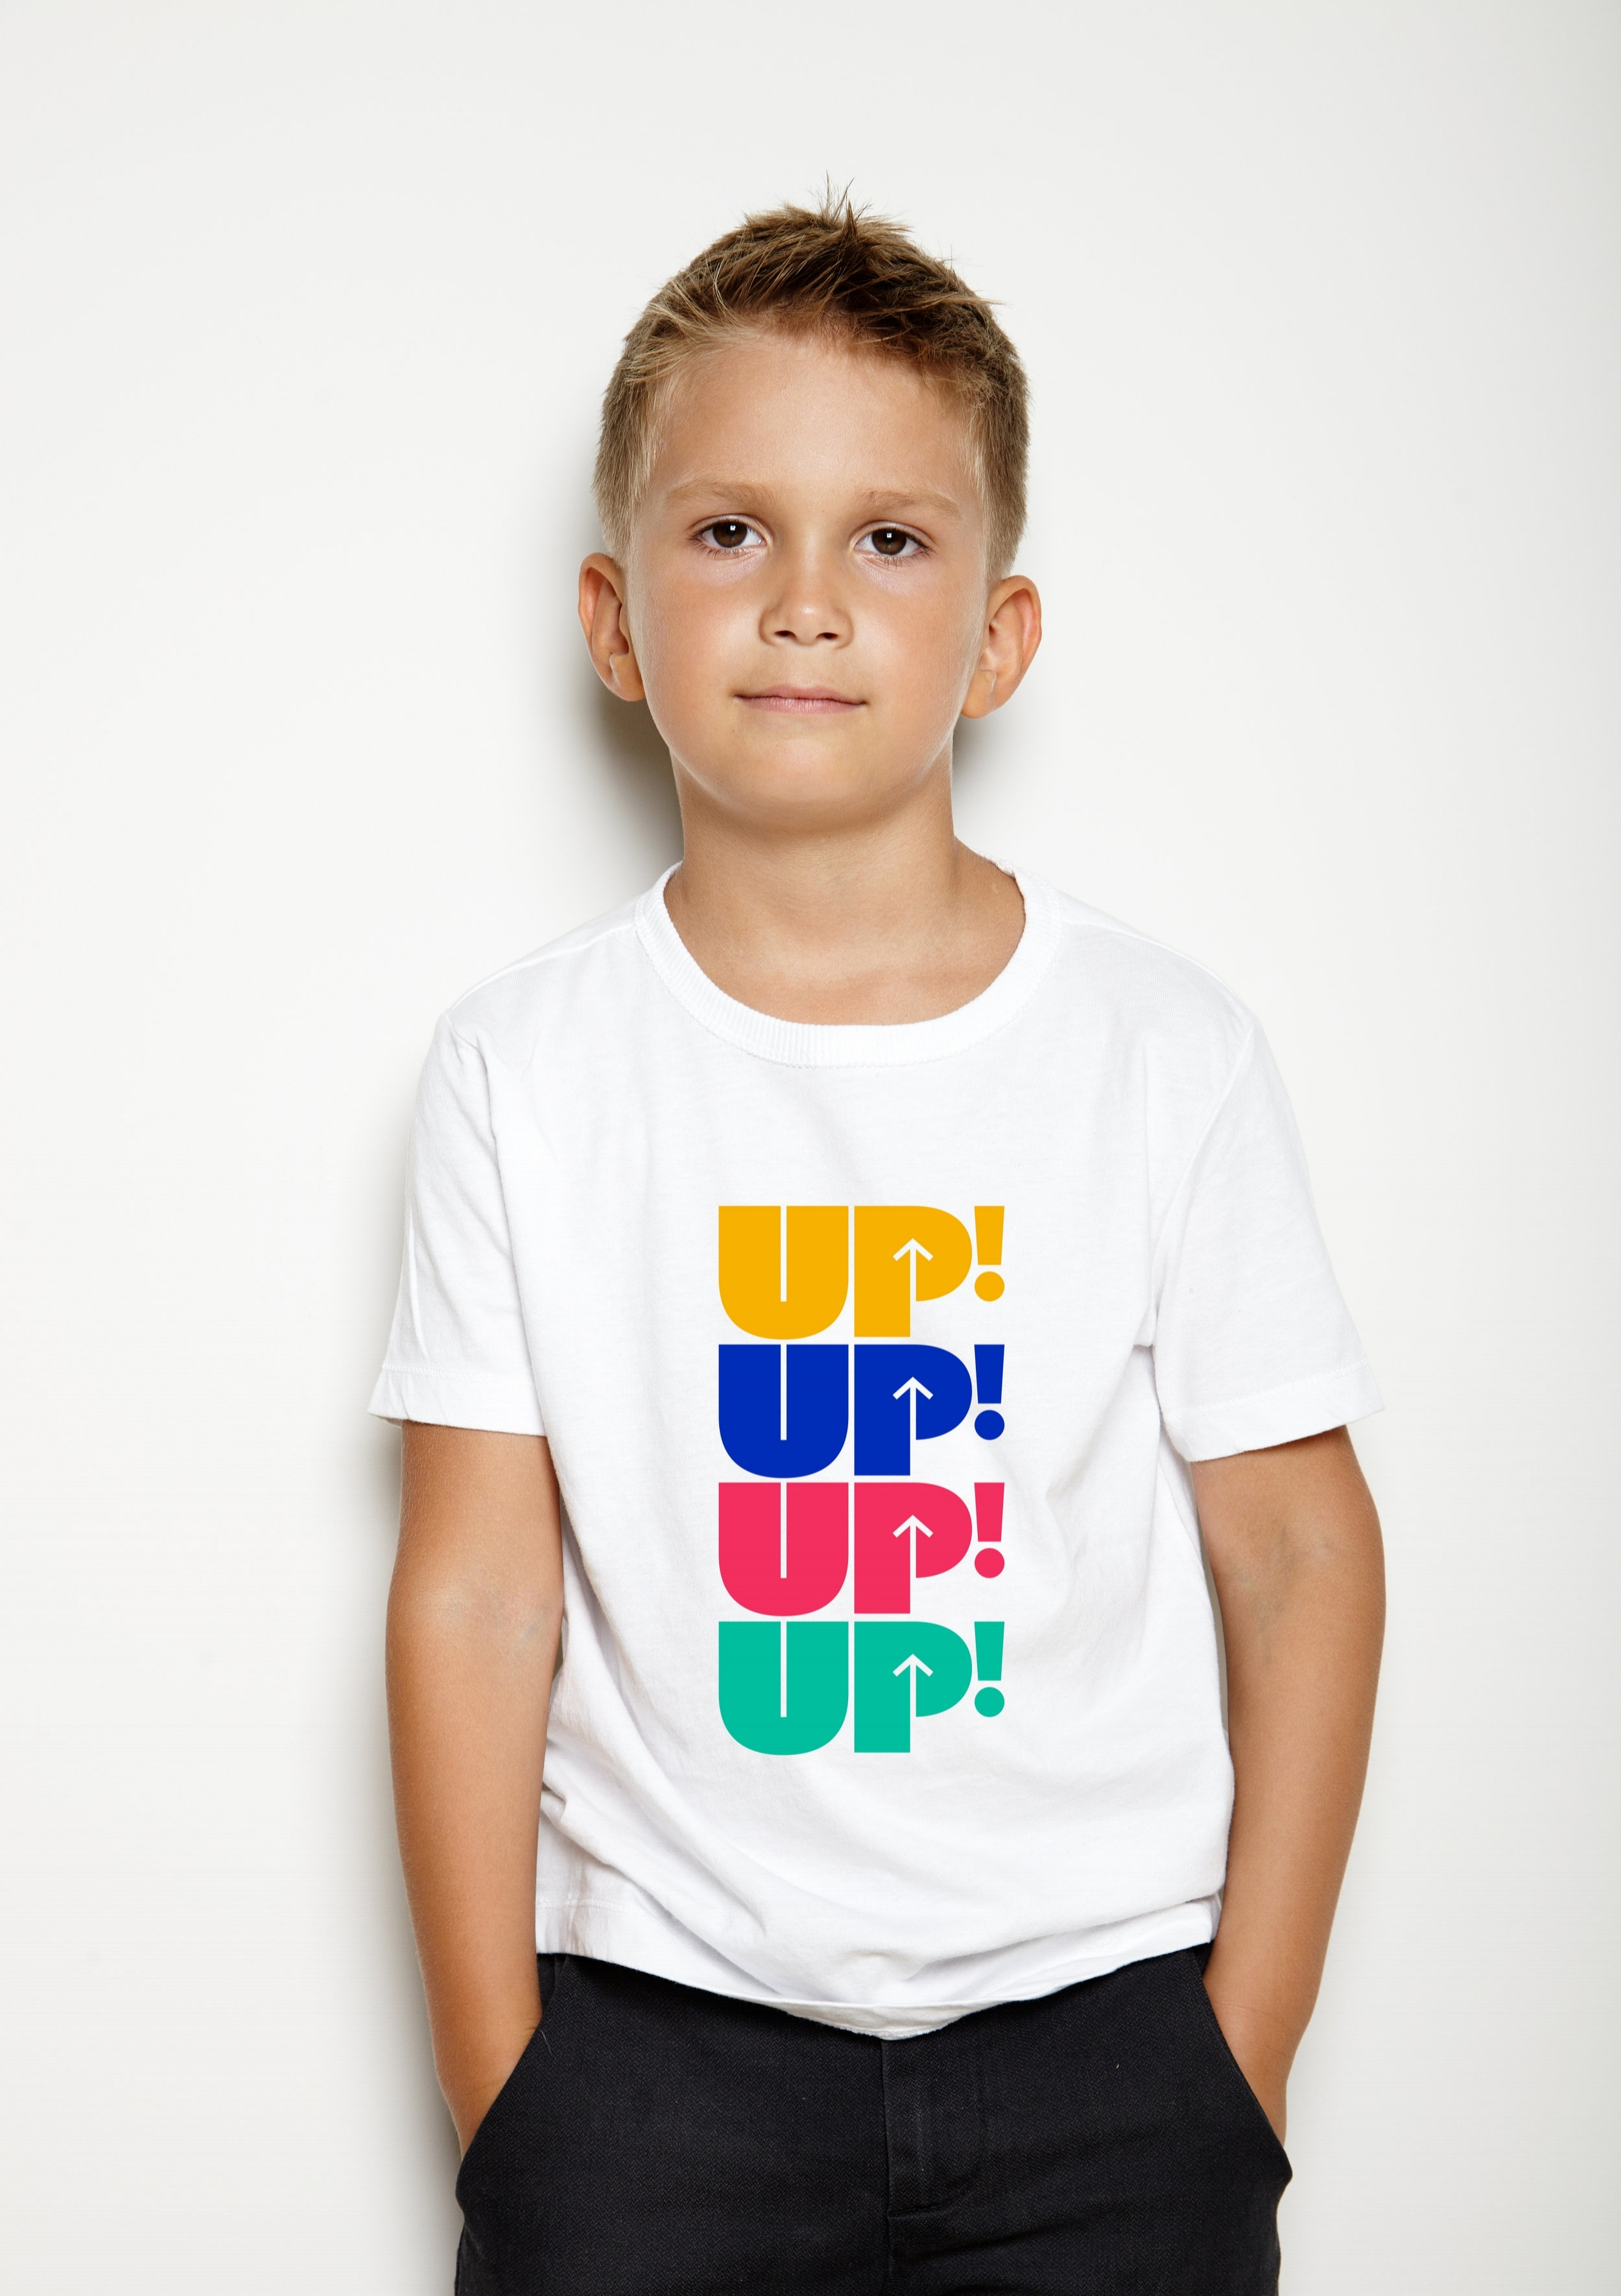 Child in t shirt.jpg